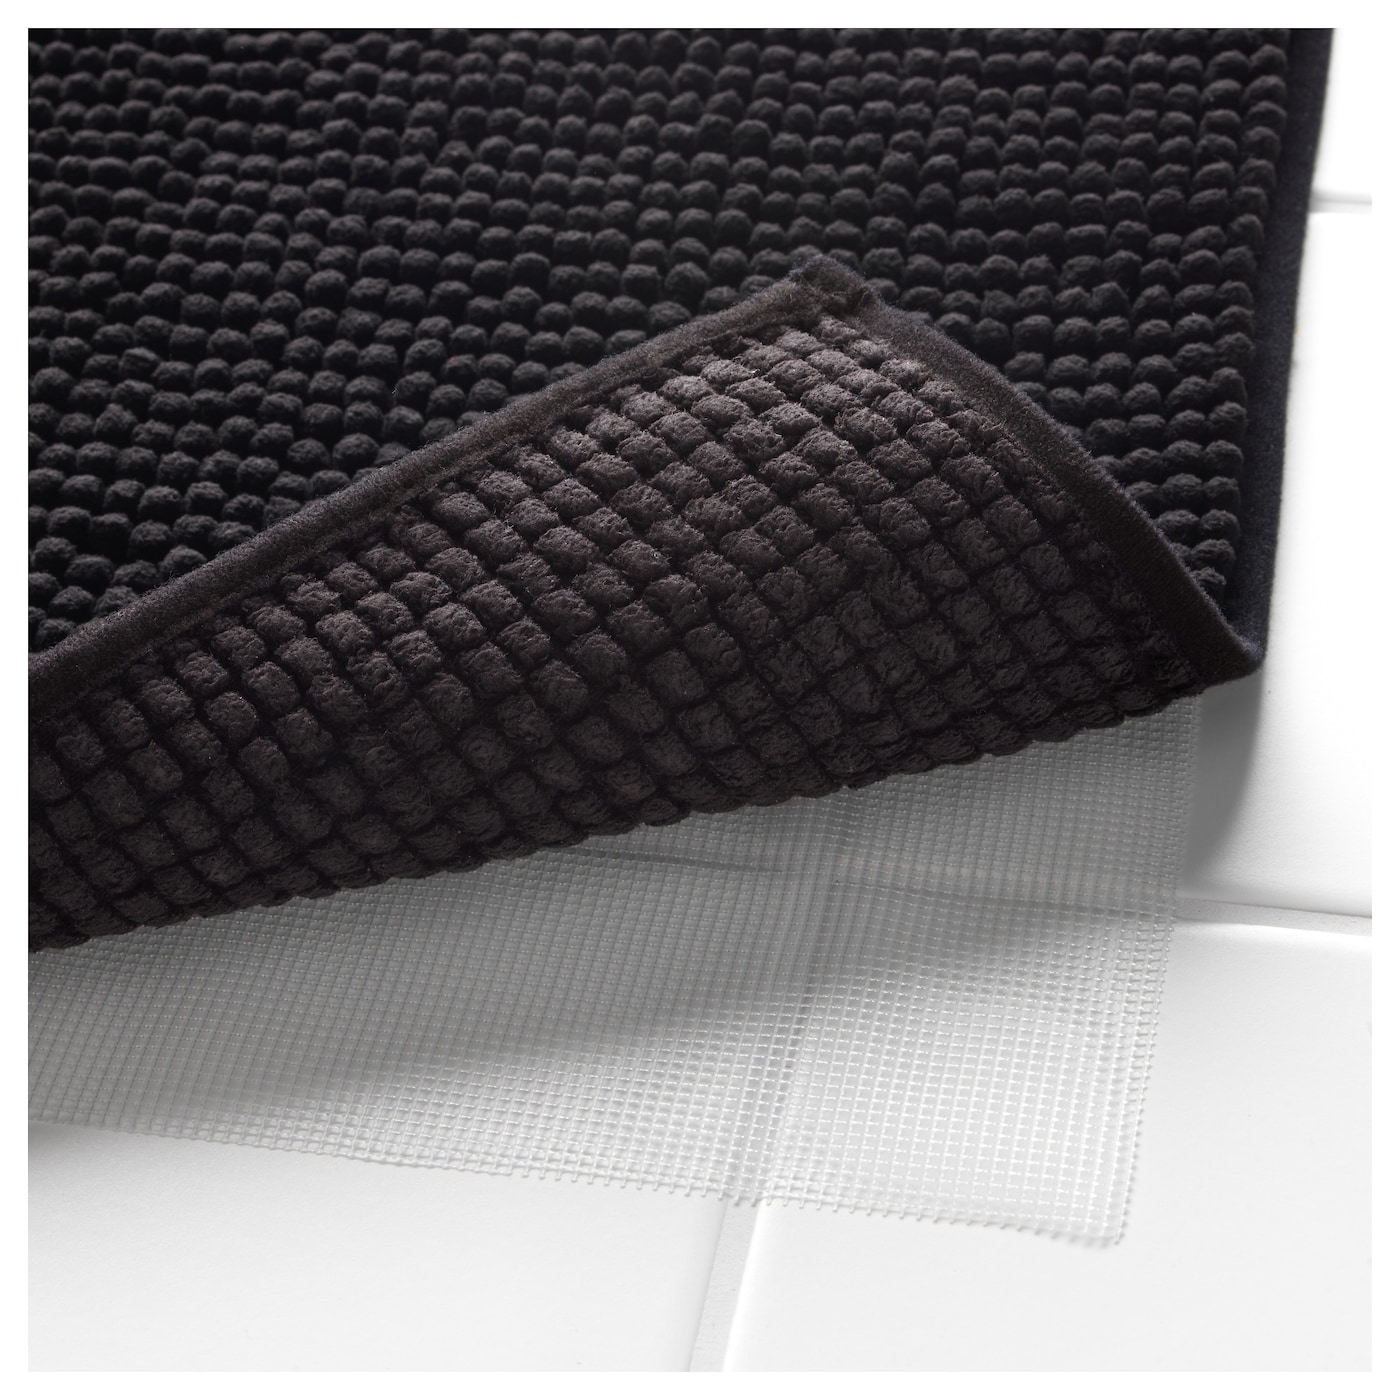 ikea toftbo bath mat ultra soft absorbent and quick to dry since it 39 s